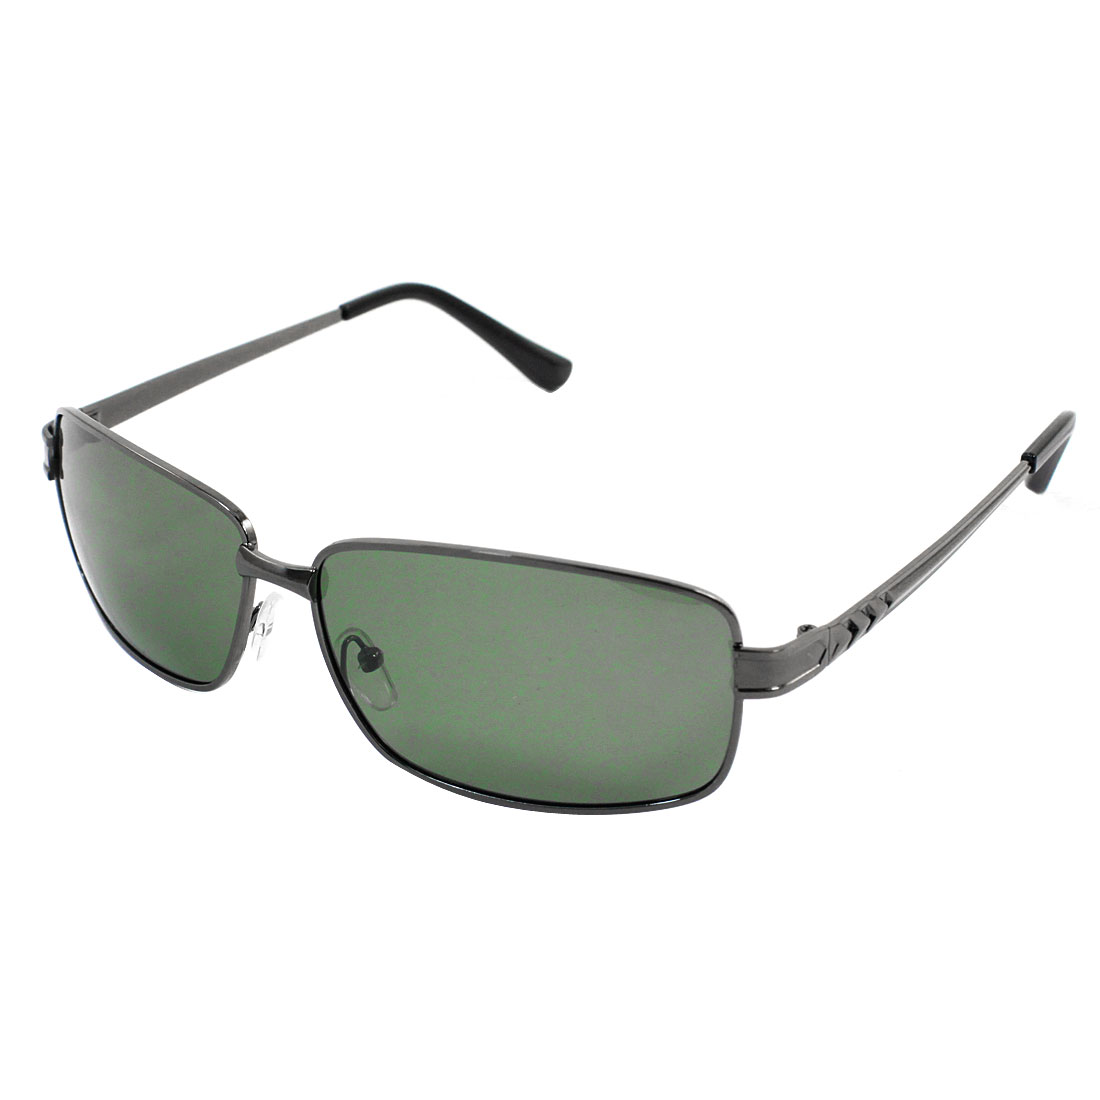 Unisex Rectangle Gray Metal Full Rim Frame Driving Polarized Sunglasses w Case